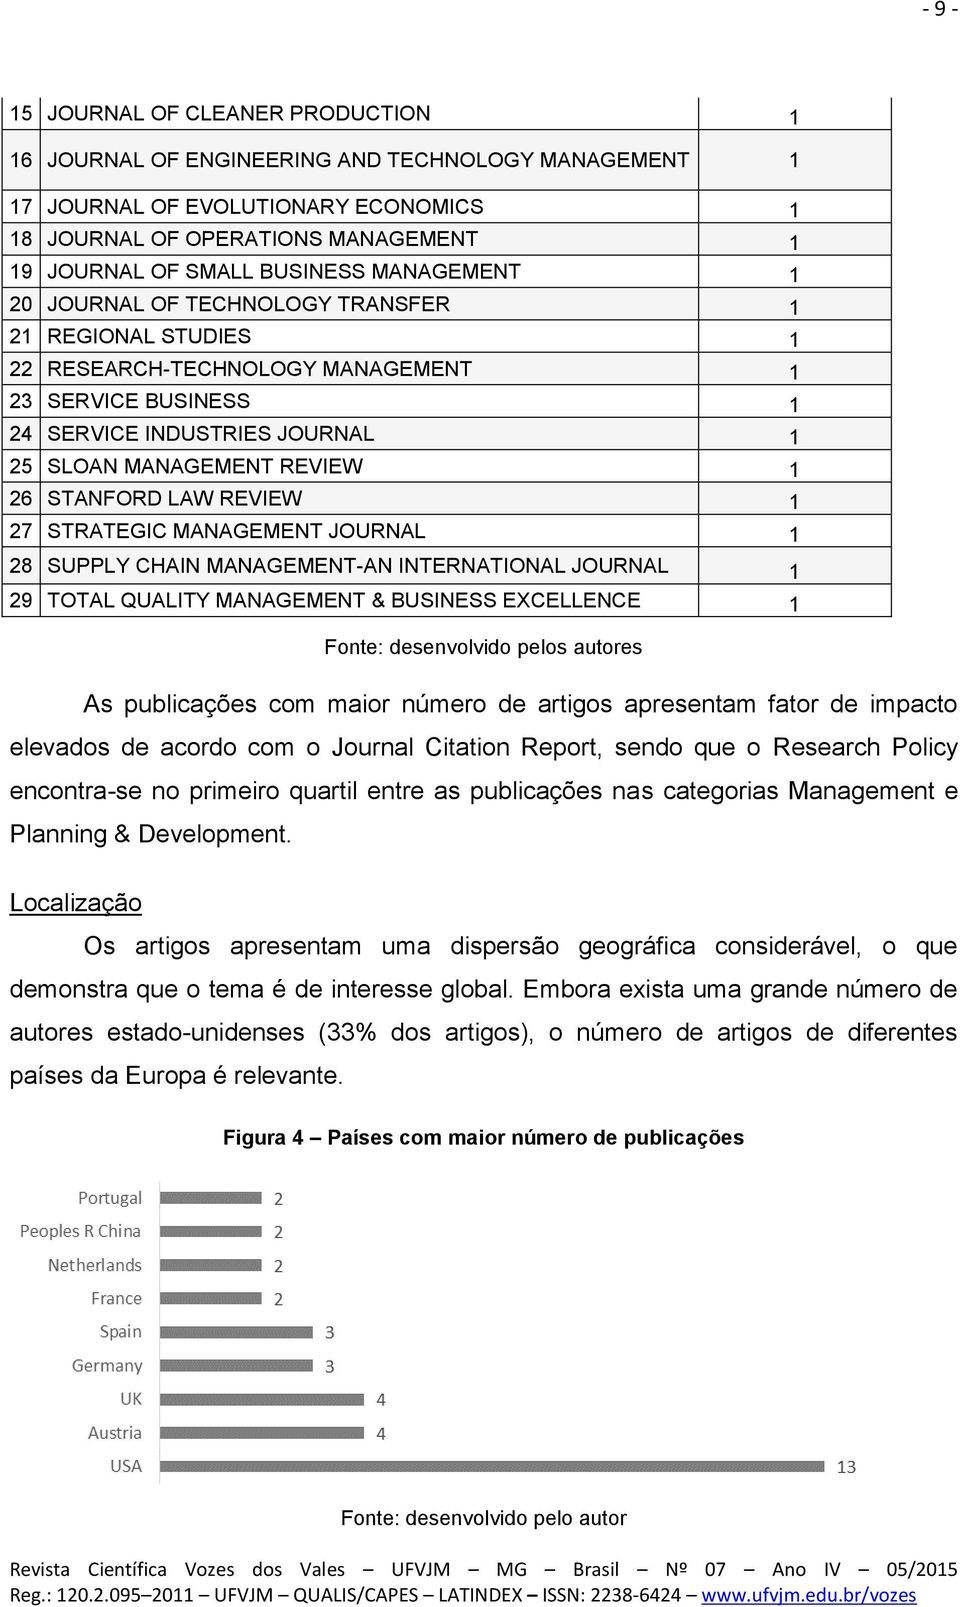 STANFORD LAW REVIEW 1 27 STRATEGIC MANAGEMENT JOURNAL 1 28 SUPPLY CHAIN MANAGEMENT-AN INTERNATIONAL JOURNAL 1 29 TOTAL QUALITY MANAGEMENT & BUSINESS EXCELLENCE 1 Fonte: desenvolvido pelos autores As